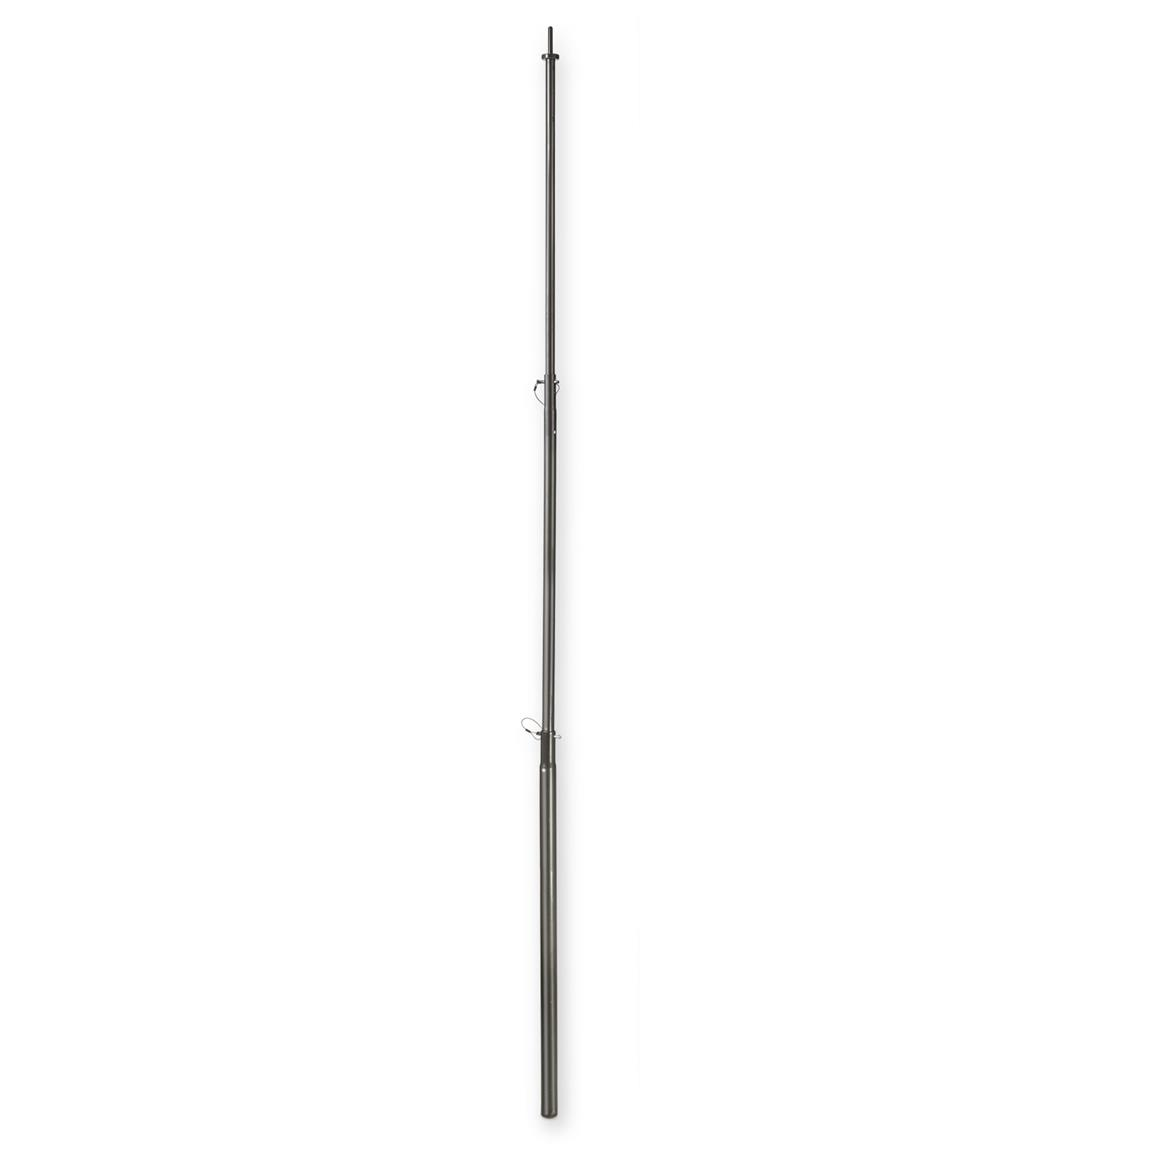 U.S. Military Surplus Telescopic Tent Pole New · Telescopes from 38 inches out to 7 feet tall  sc 1 st  Sportsmanu0027s Guide & U.S. Military Surplus Telescopic Tent Pole New - 667706 Tents ...